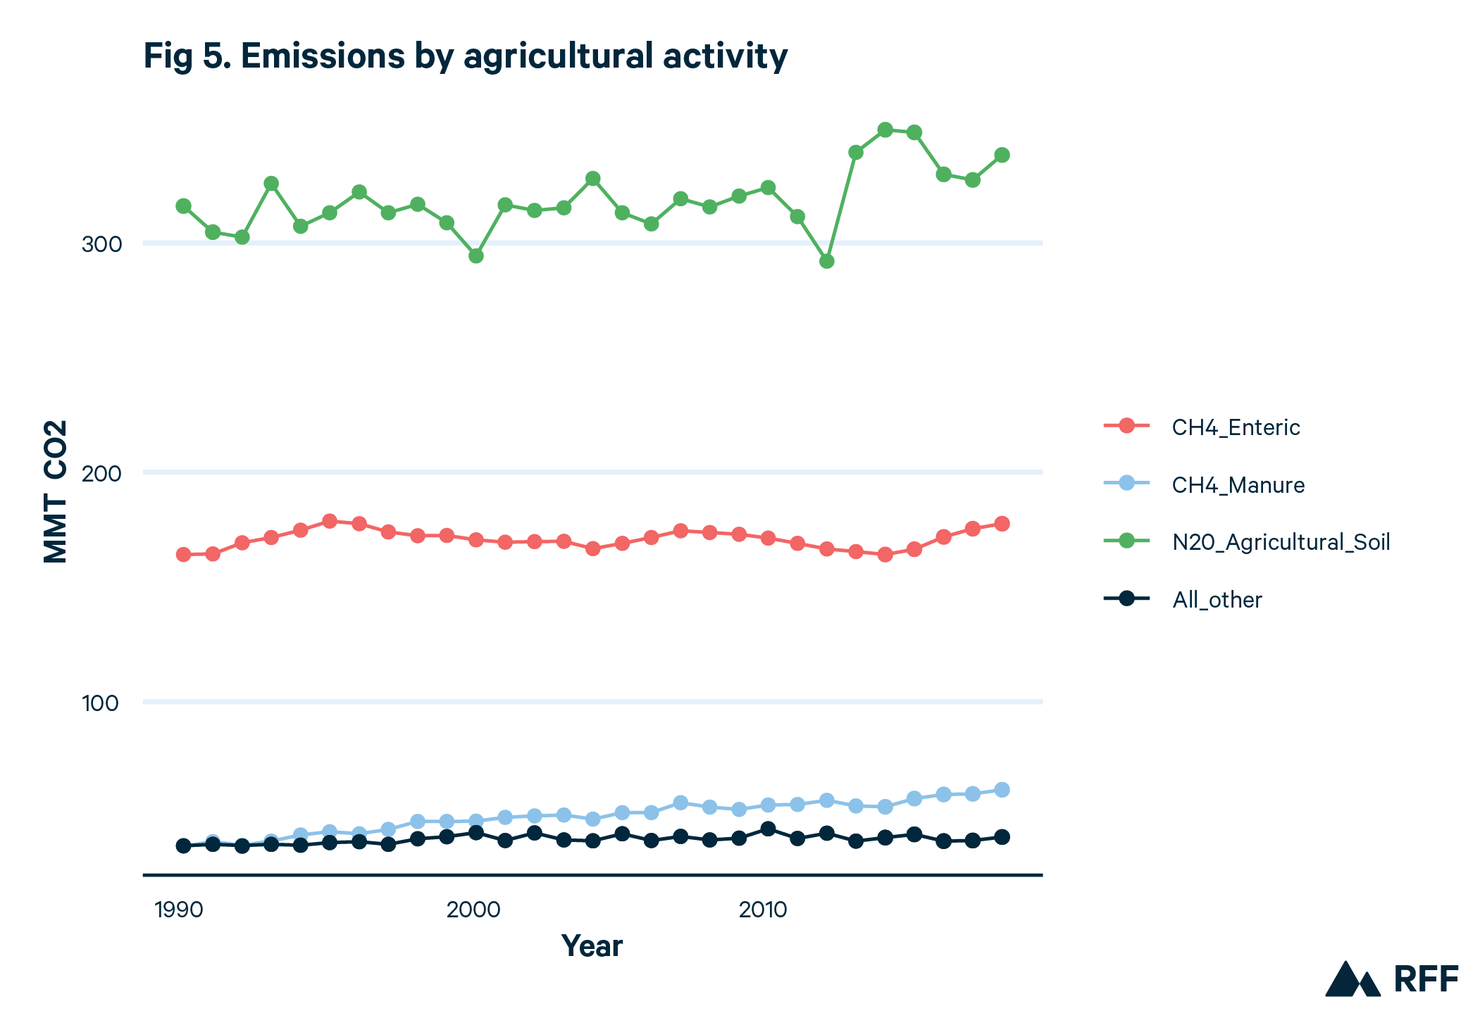 Emissions from the Agriculture Sector by production activity and greenhouse gas from 1990 to 2018. Shows emissions by agricultural activity.